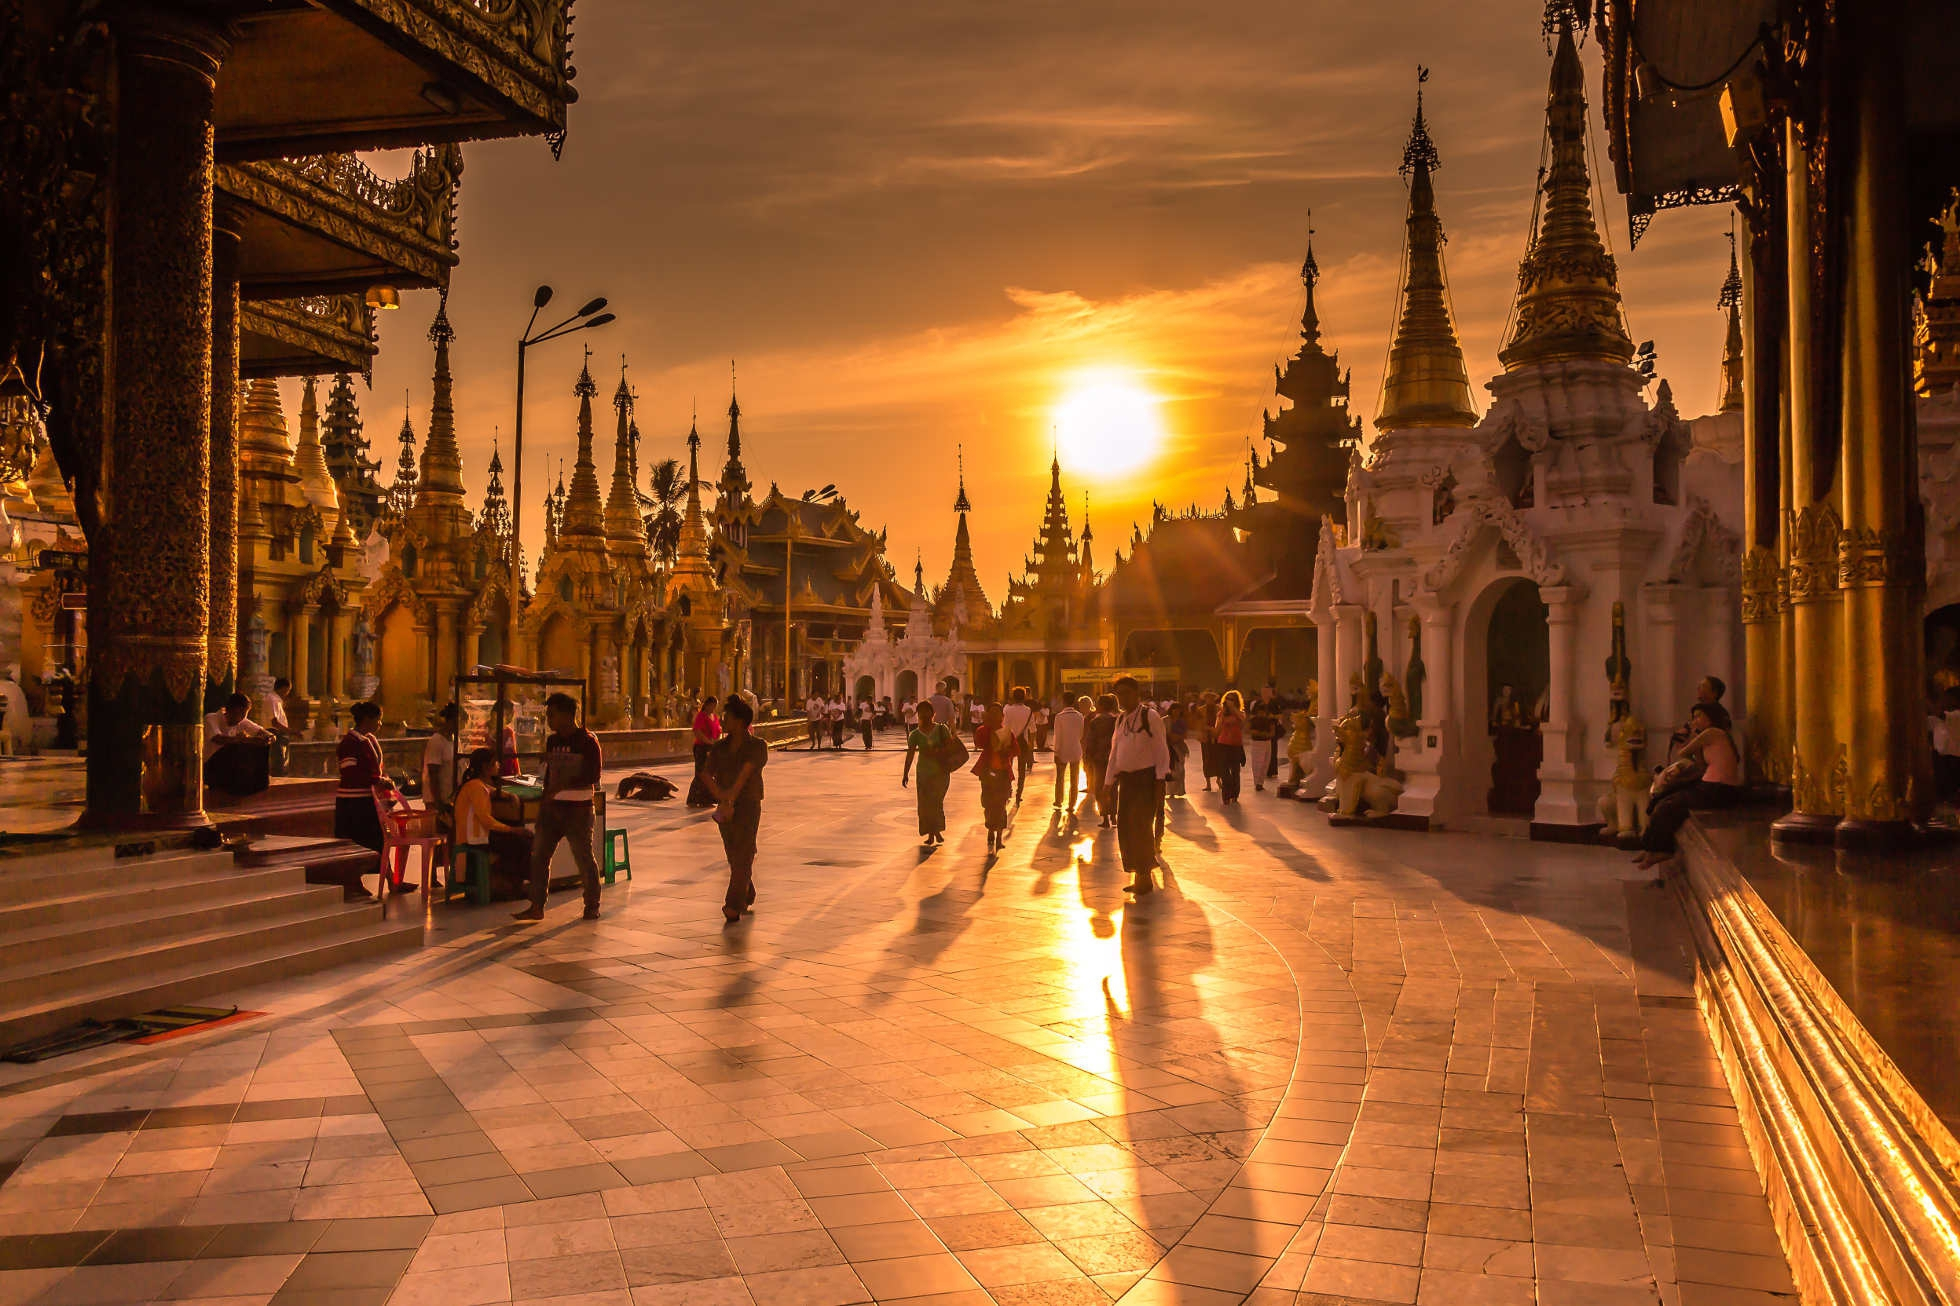 Yangon wallpapers images photos pictures backgrounds - Wallpaper stills ...